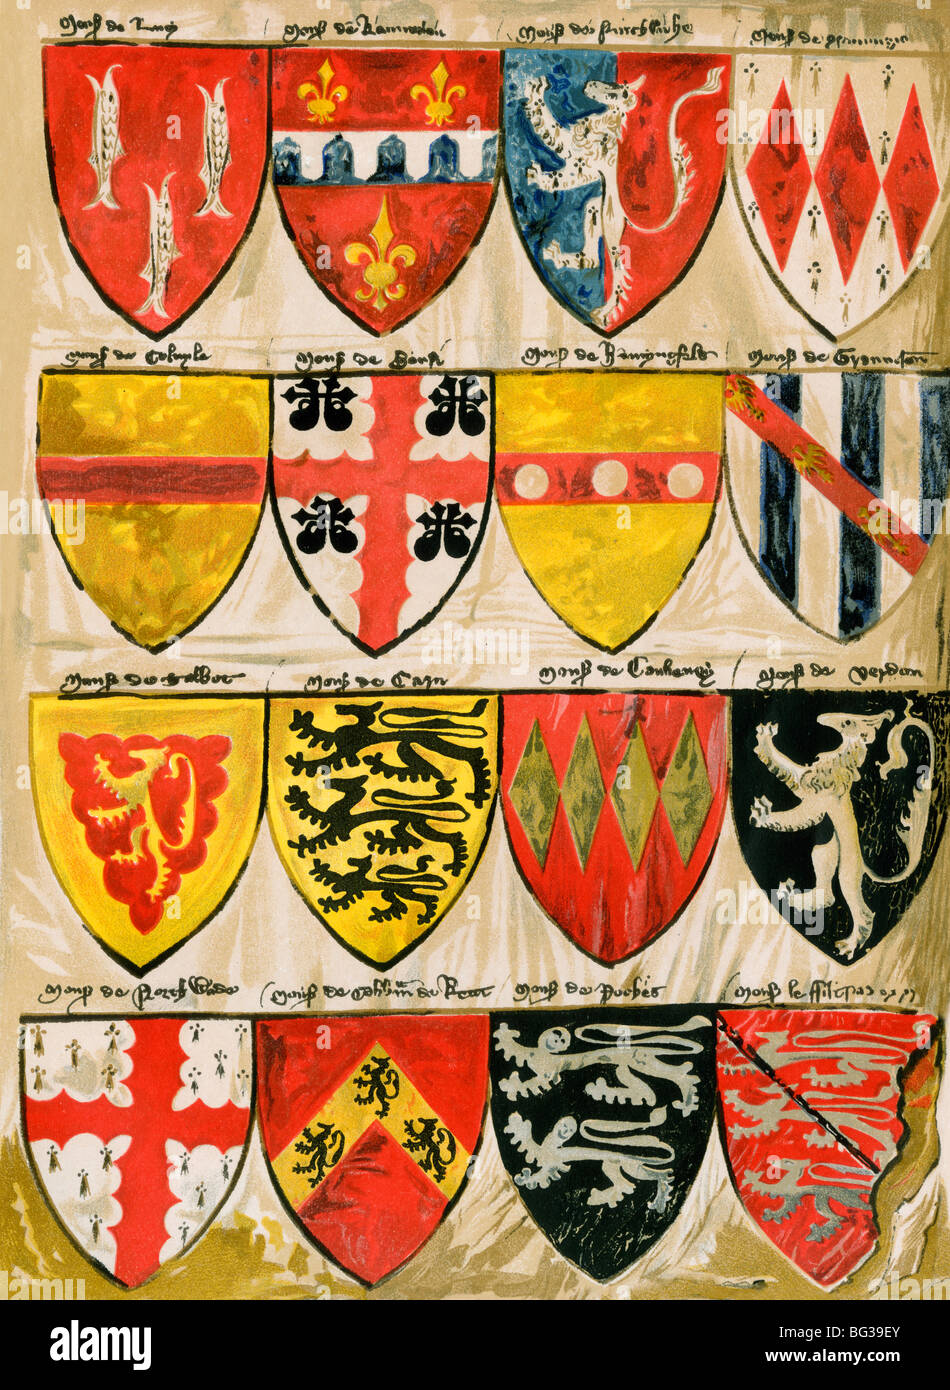 Shields of English knights and barons, painted during the reign of Edward III. Color lithograph - Stock Image